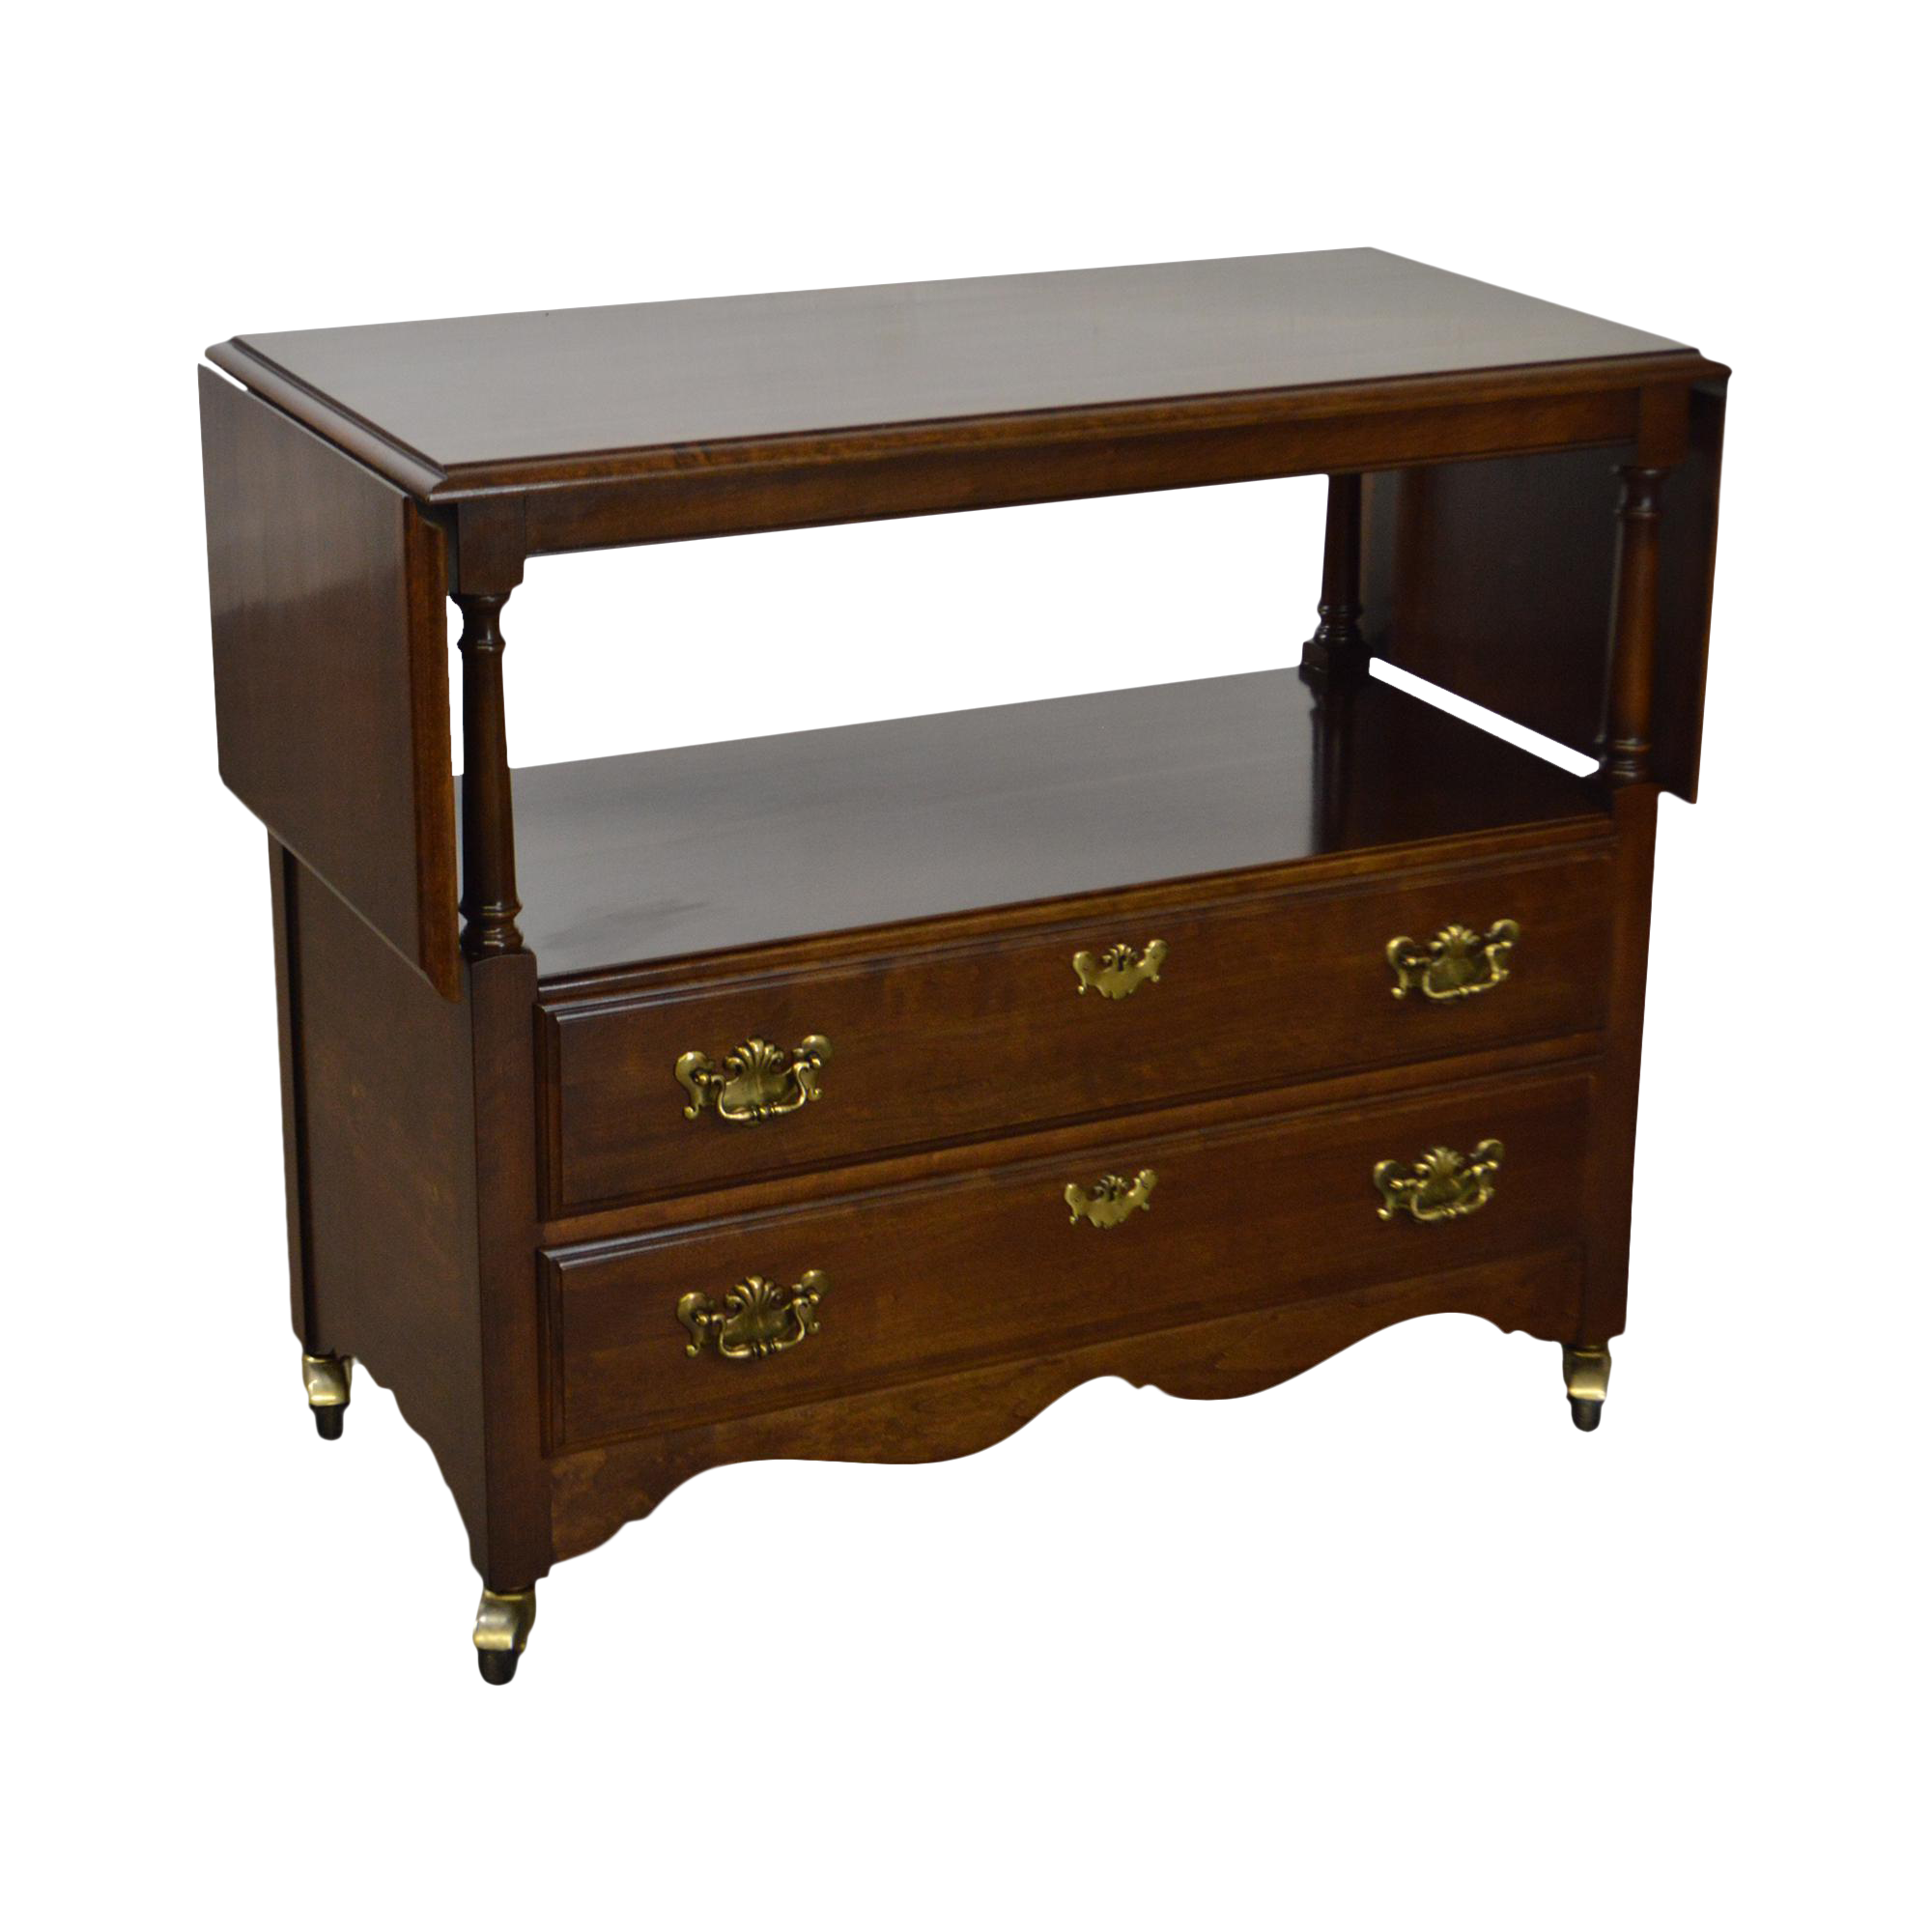 Gently Used Pennsylvania House Furniture Up to 60 off at Chairish